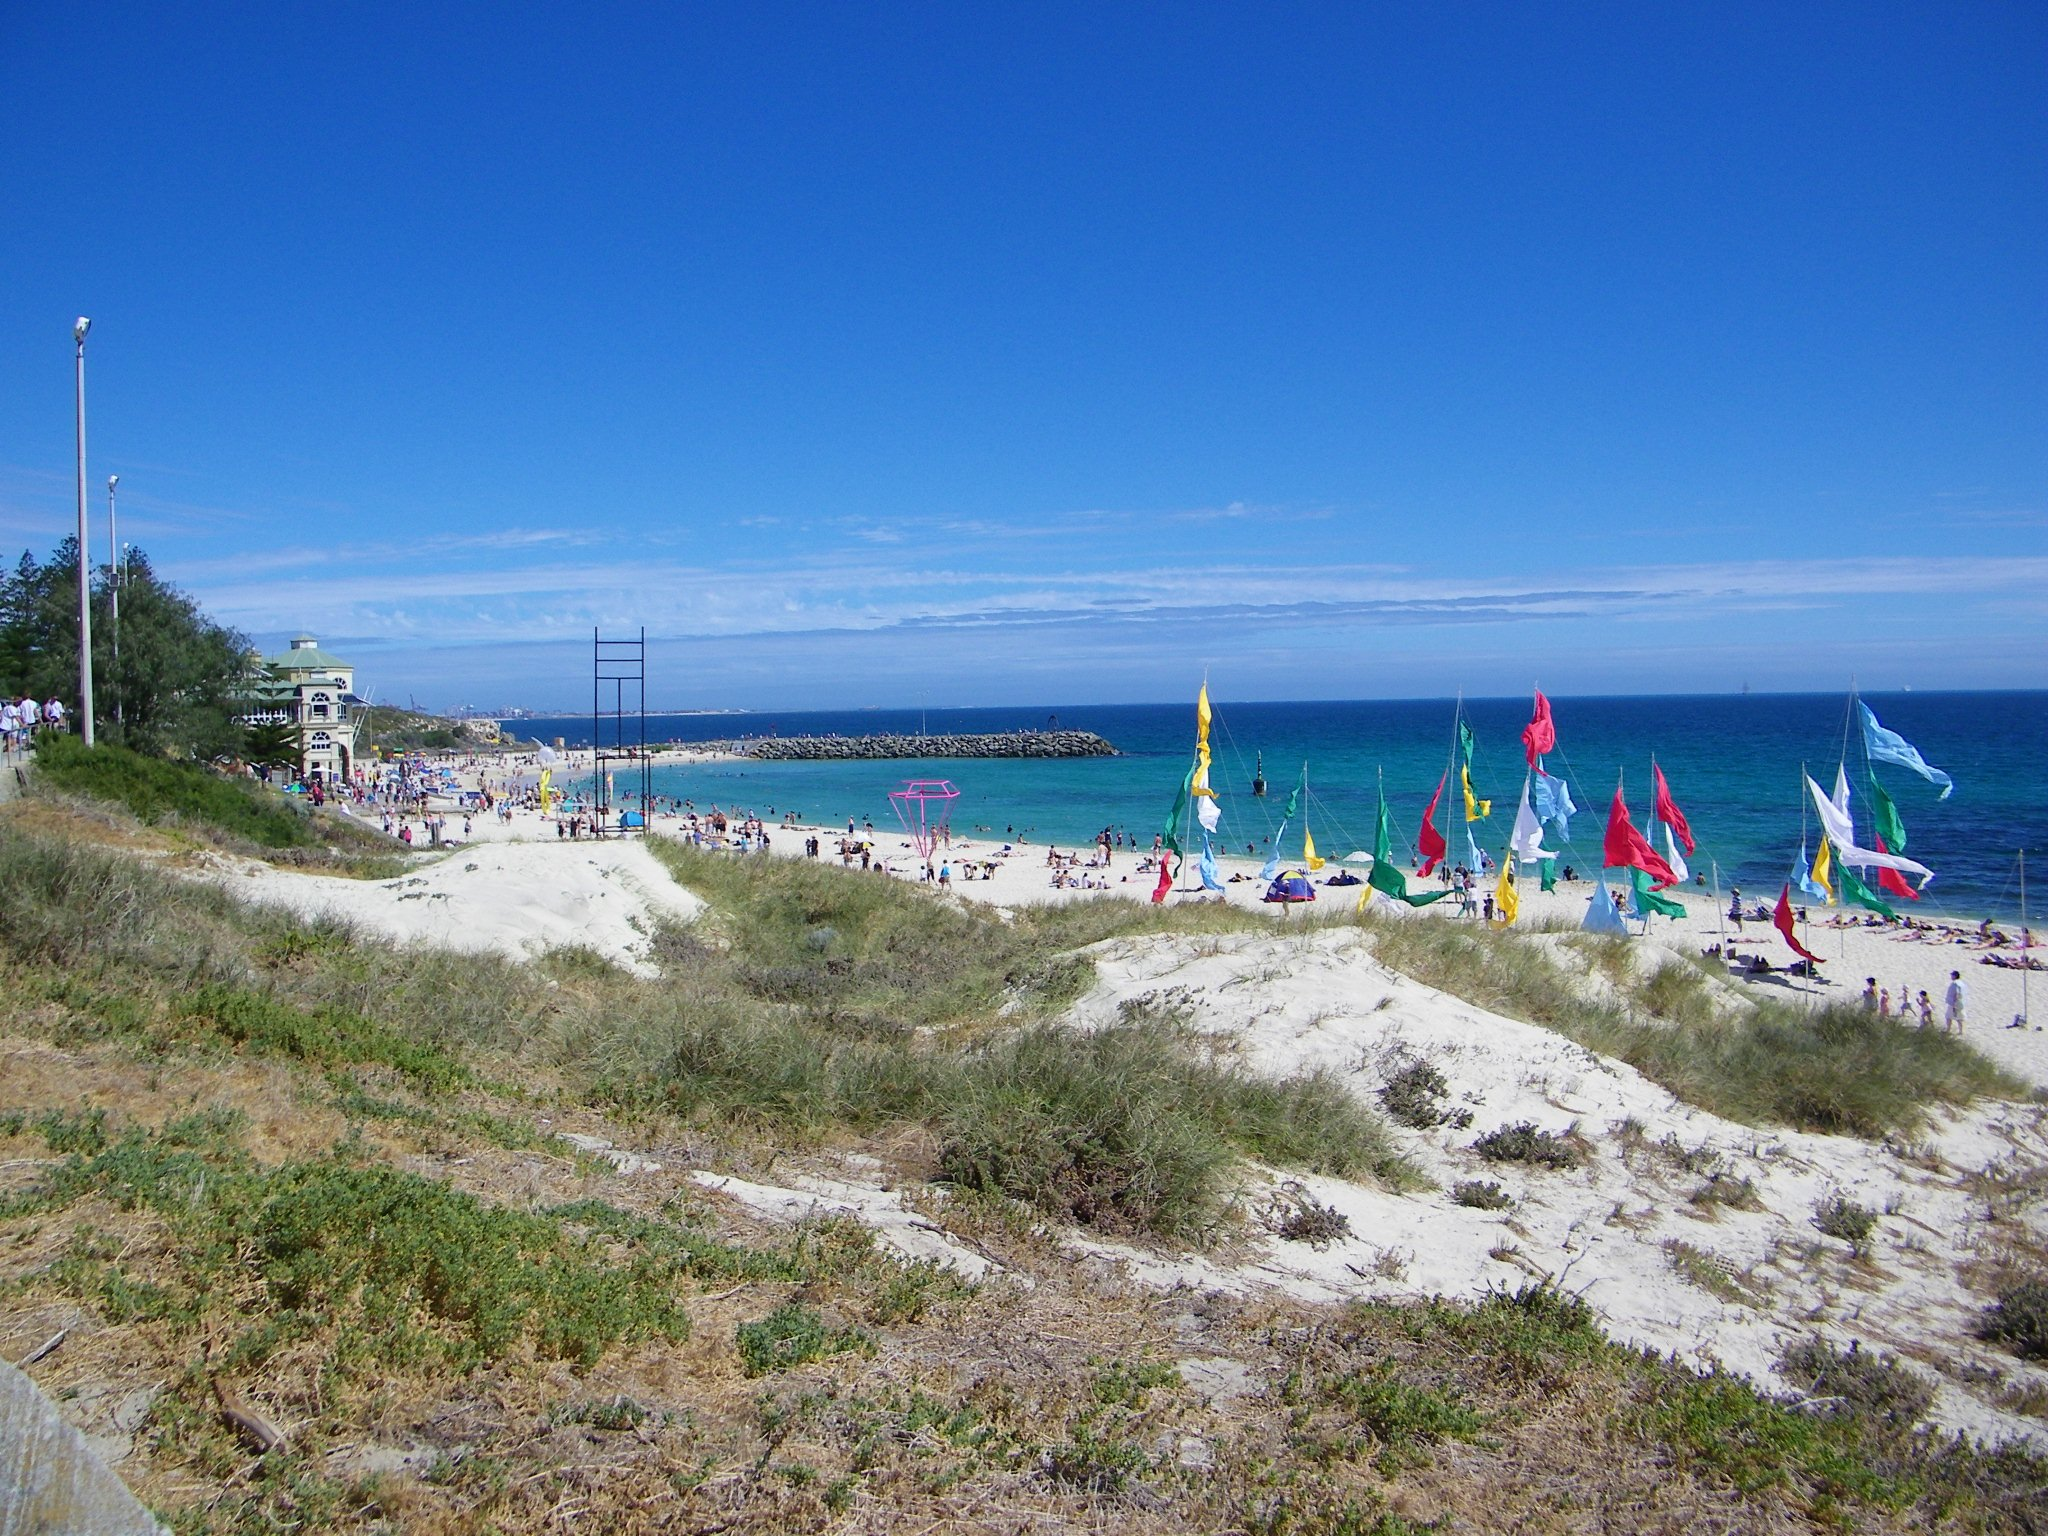 Cottesloe Beach By Michael_Spencer from Perth, WA, Australia (Cottesloe Beach  Uploaded by russavia) [CC-BY-2.0 (https://creativecommons.org/licenses/by/2.0)], via Wikimedia Commons